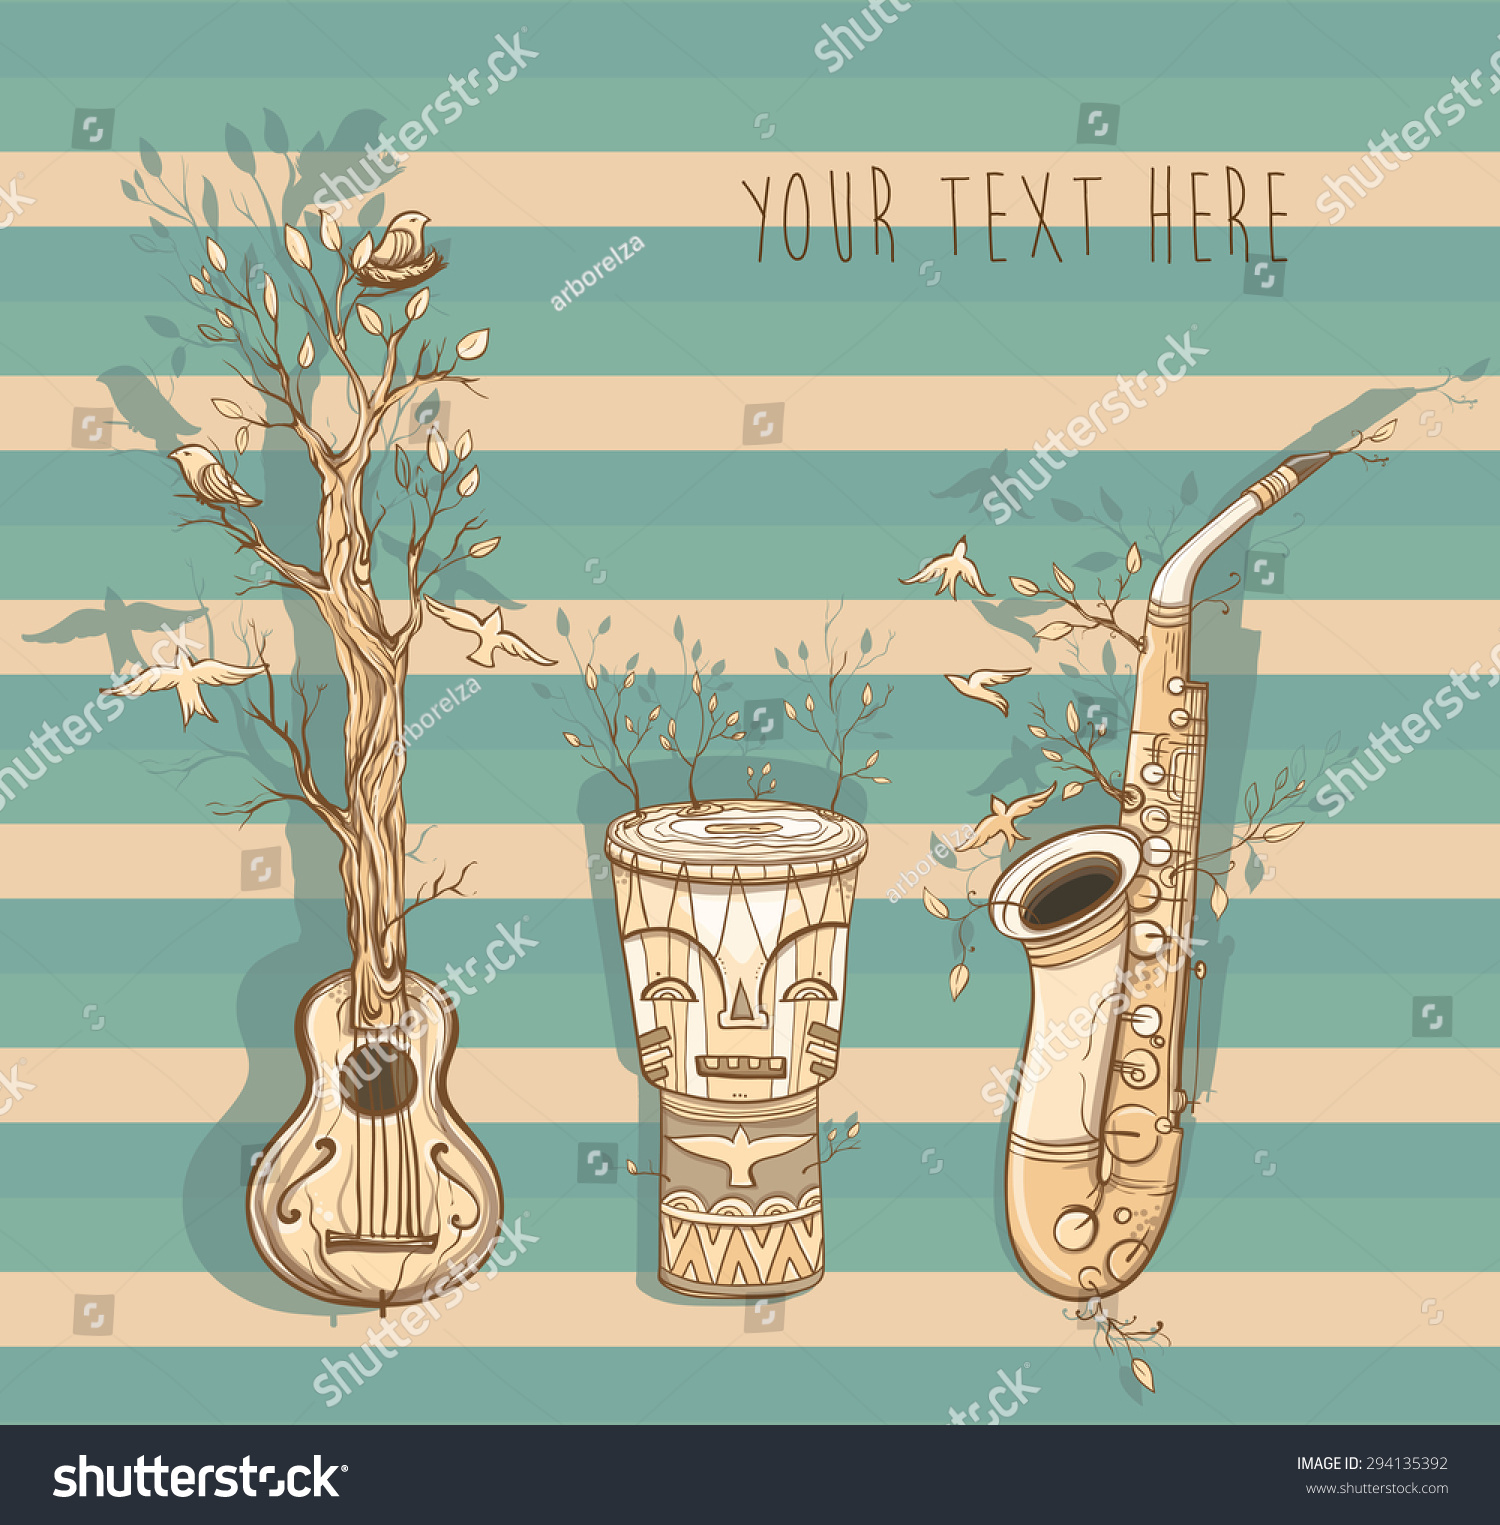 Poster design nature - Vector Illustration With Guitar Saxophone Djembe Drum Template For Card Or Poster Design